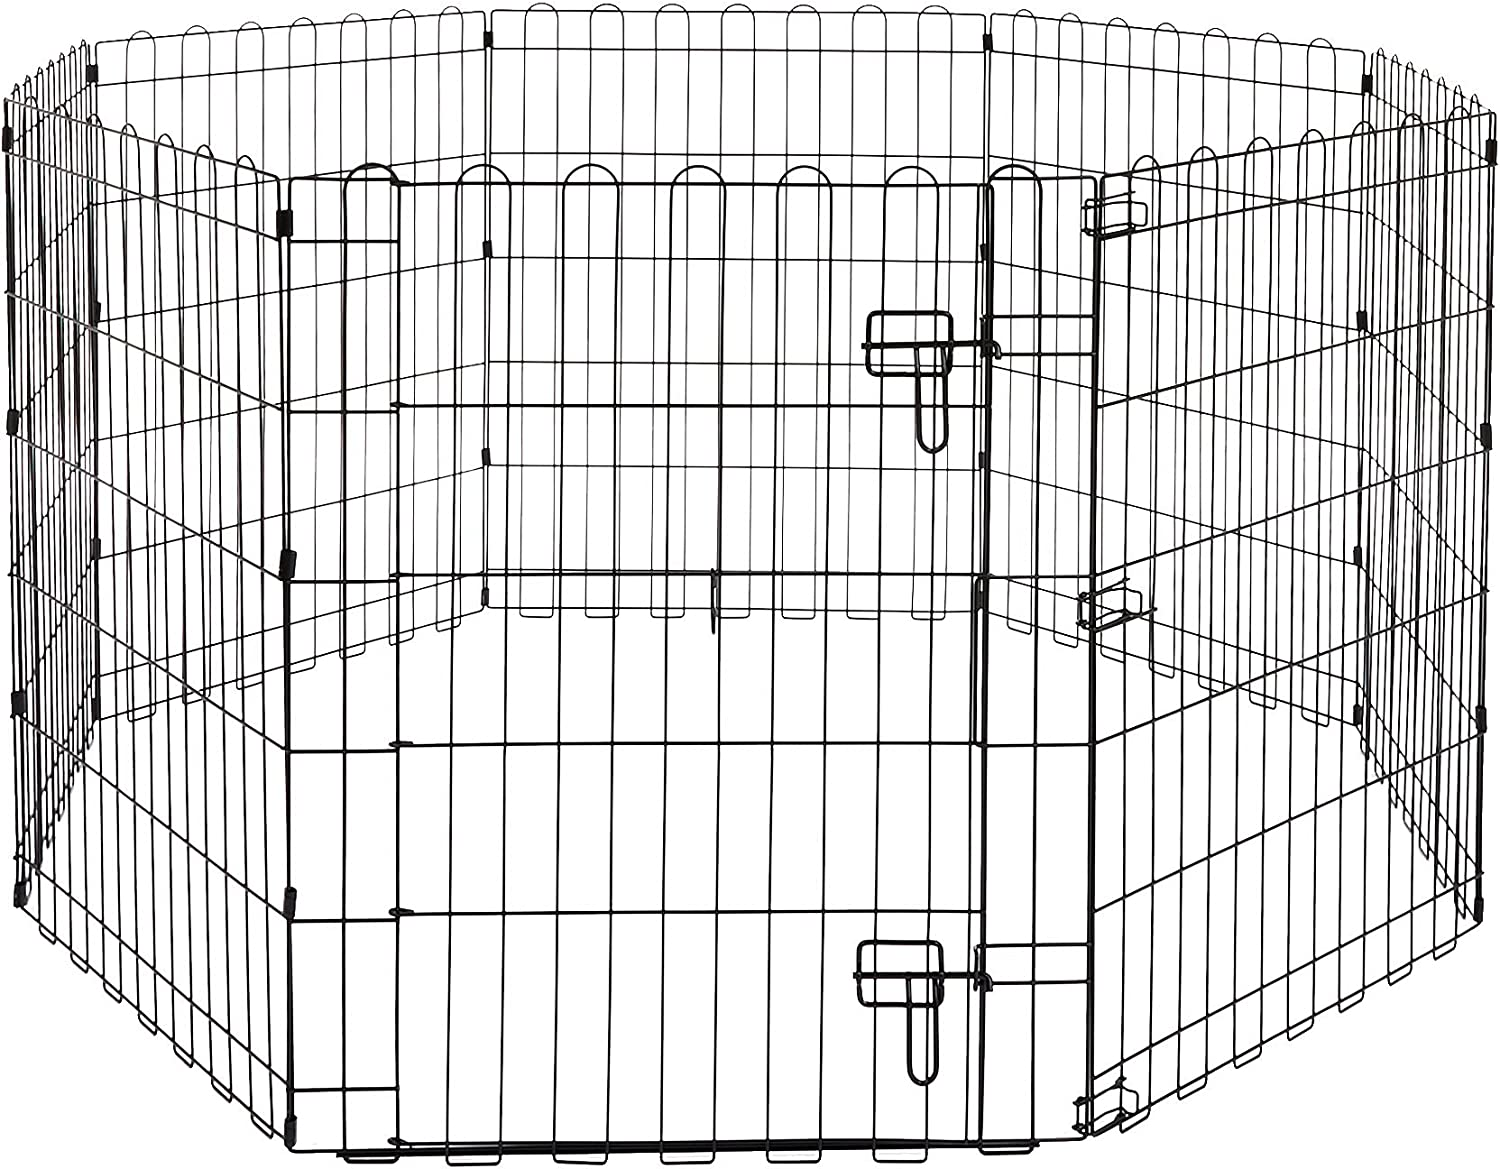 Basics Foldable Metal Pet Dog Exercise Fence Pen With Gate - 60 x 60 x 30 Inches : Pet Supplies